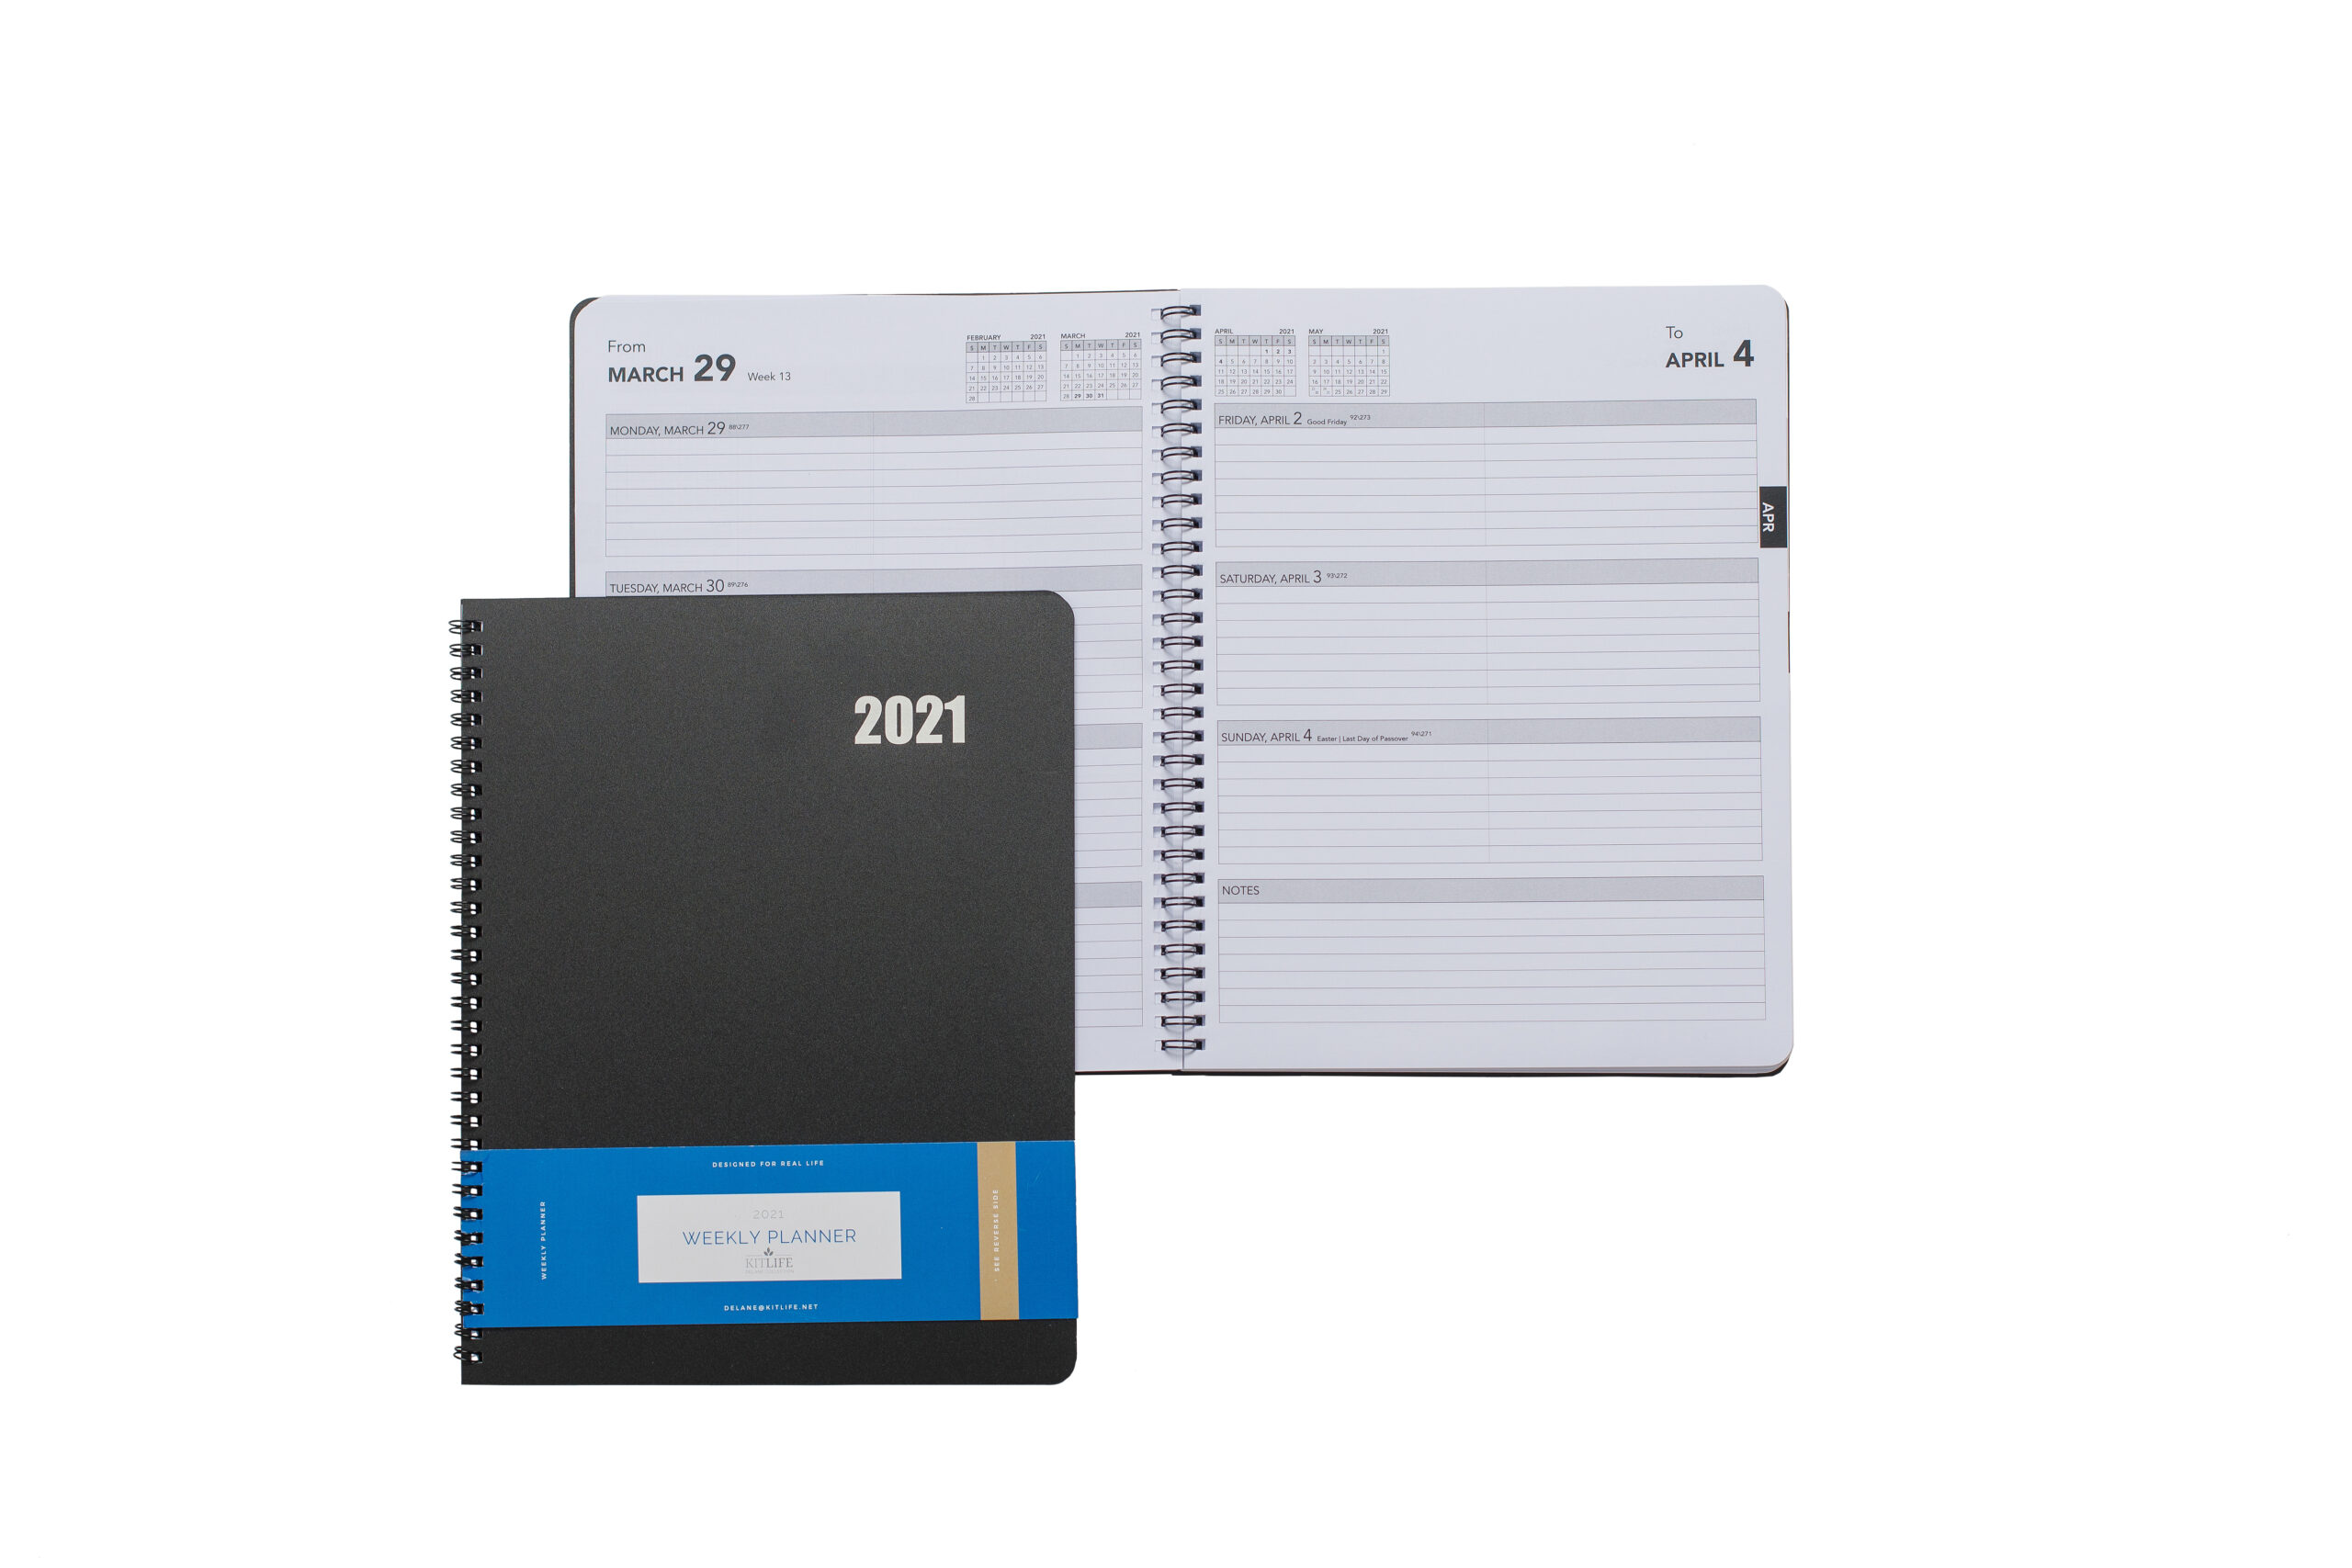 Delane Weekly Planner 2021-2022 - Spiral Bound Hourly Appointment Book – 18  Month Academic Planner – Annual Day Organizer Agenda With Premium Paper,